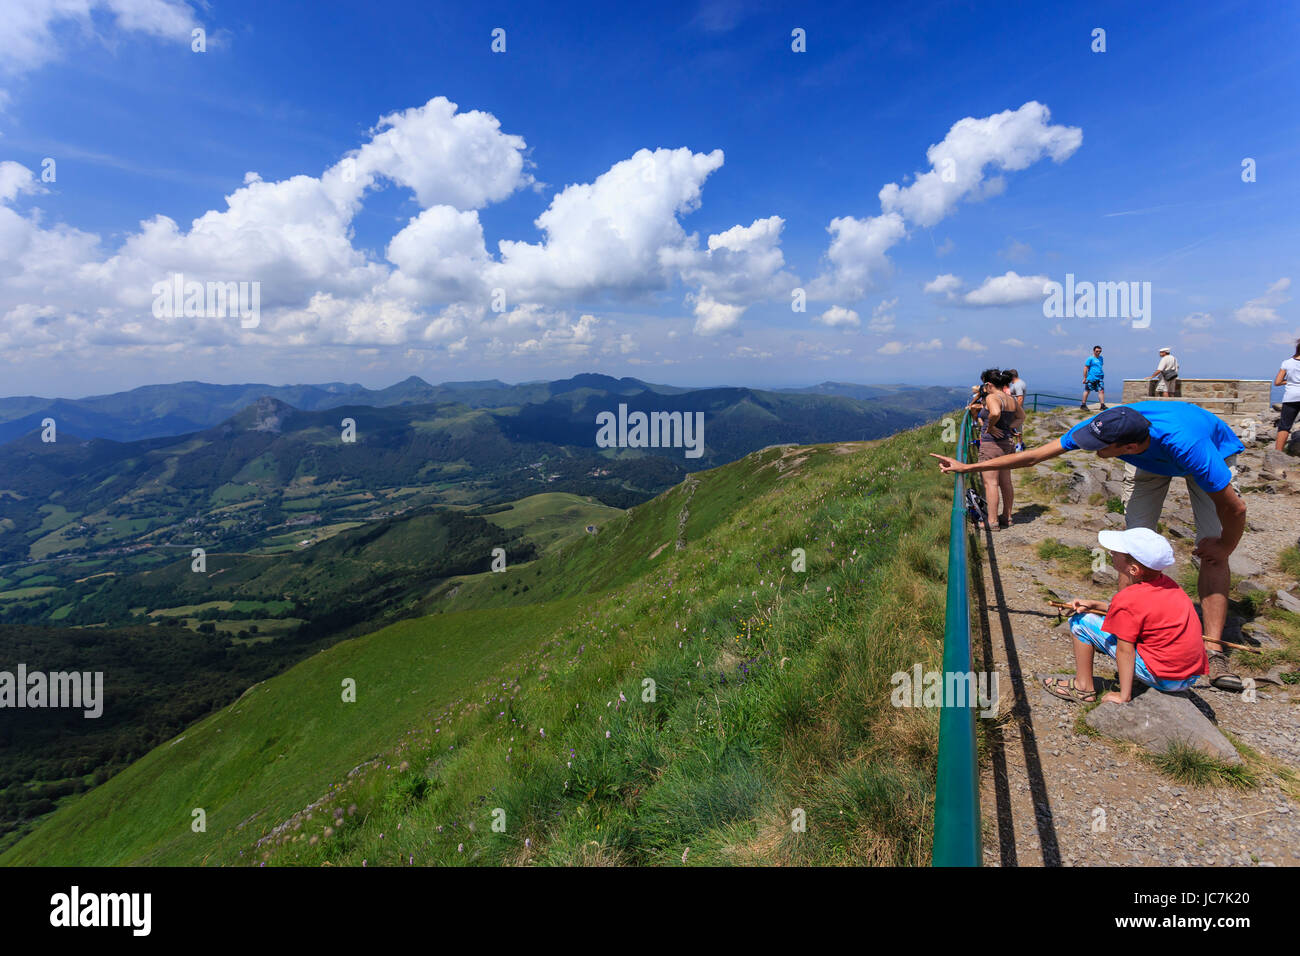 Calvados France Climate Sommet Stock Photos And Sommet Stock Images Alamy